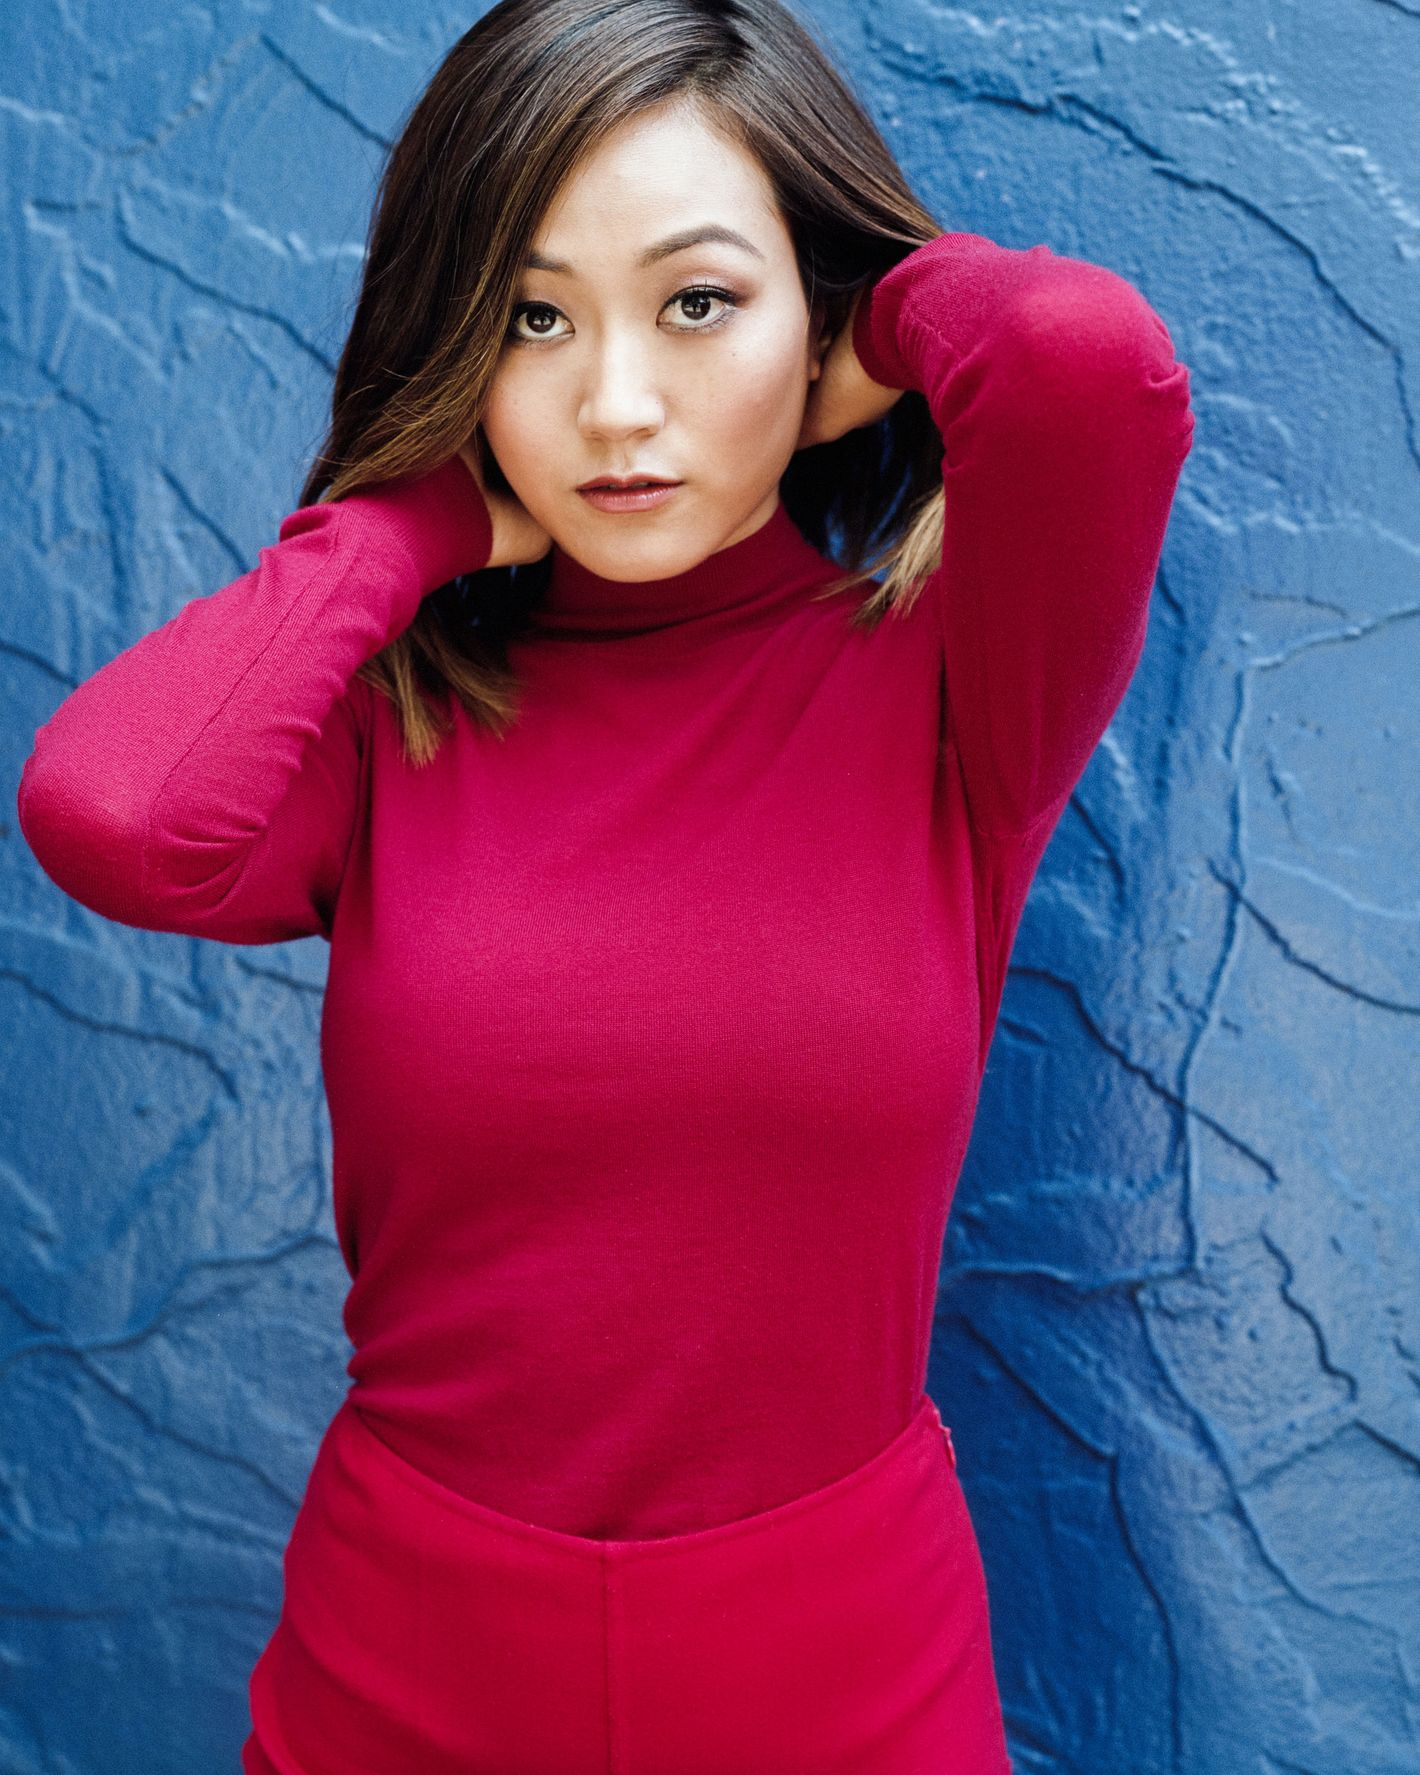 Discussion on this topic: Mildred Clinton, karen-fukuhara/